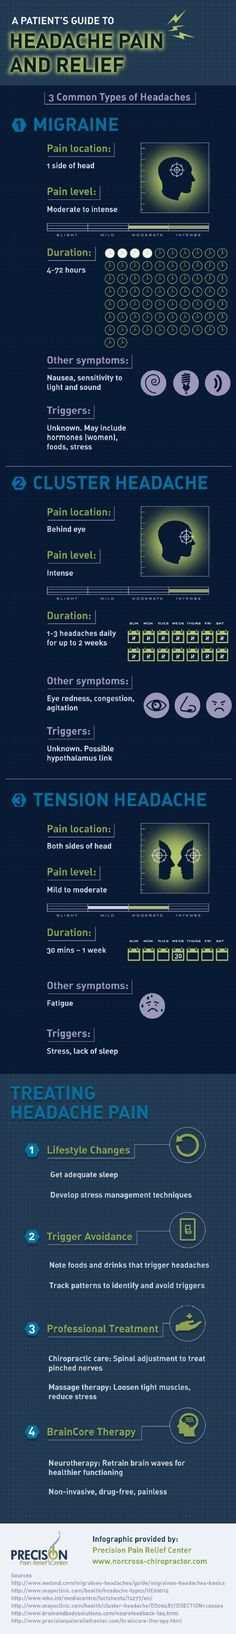 A Patient's Guide To Headache Pain and Relief [INFOGRAPHIC] #headache #guide All natural, organic, no caffeine! #migraine #headache #natural